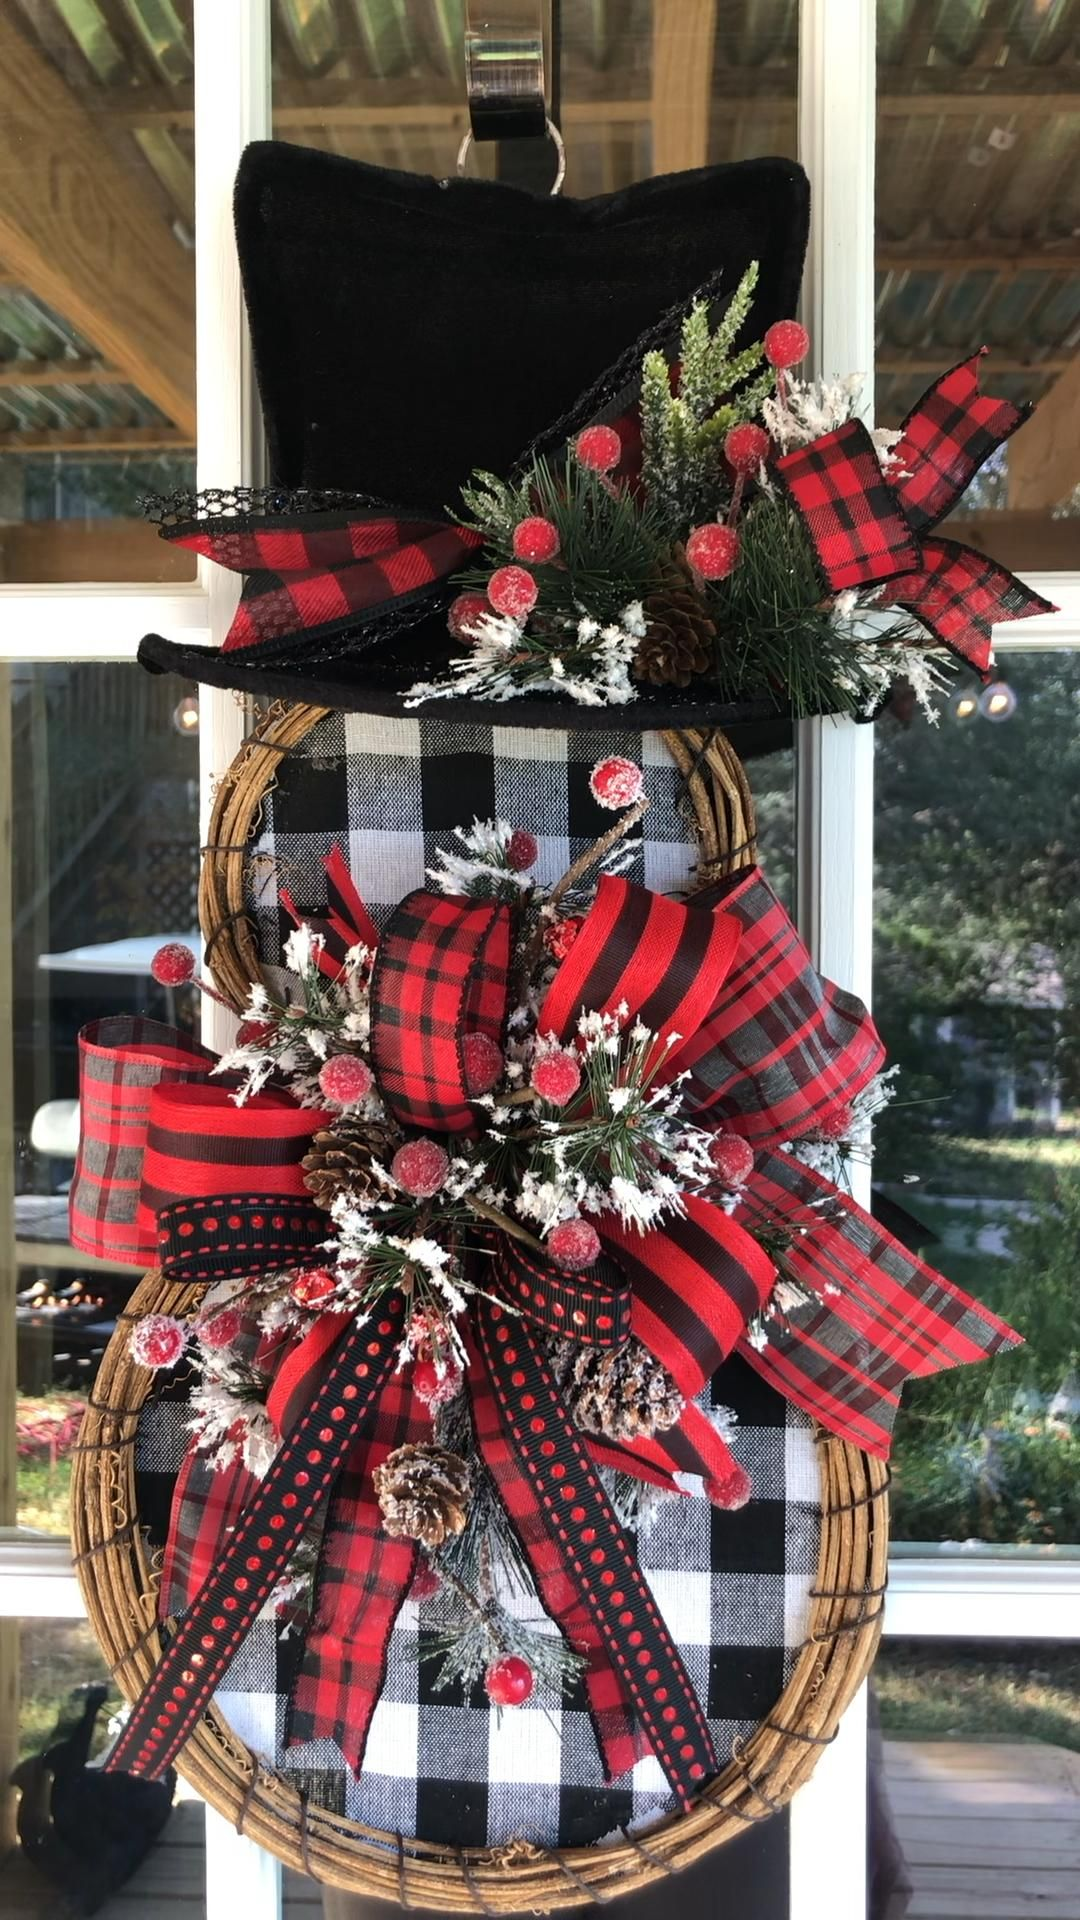 Custom quality wreaths for all seasons by thebearc